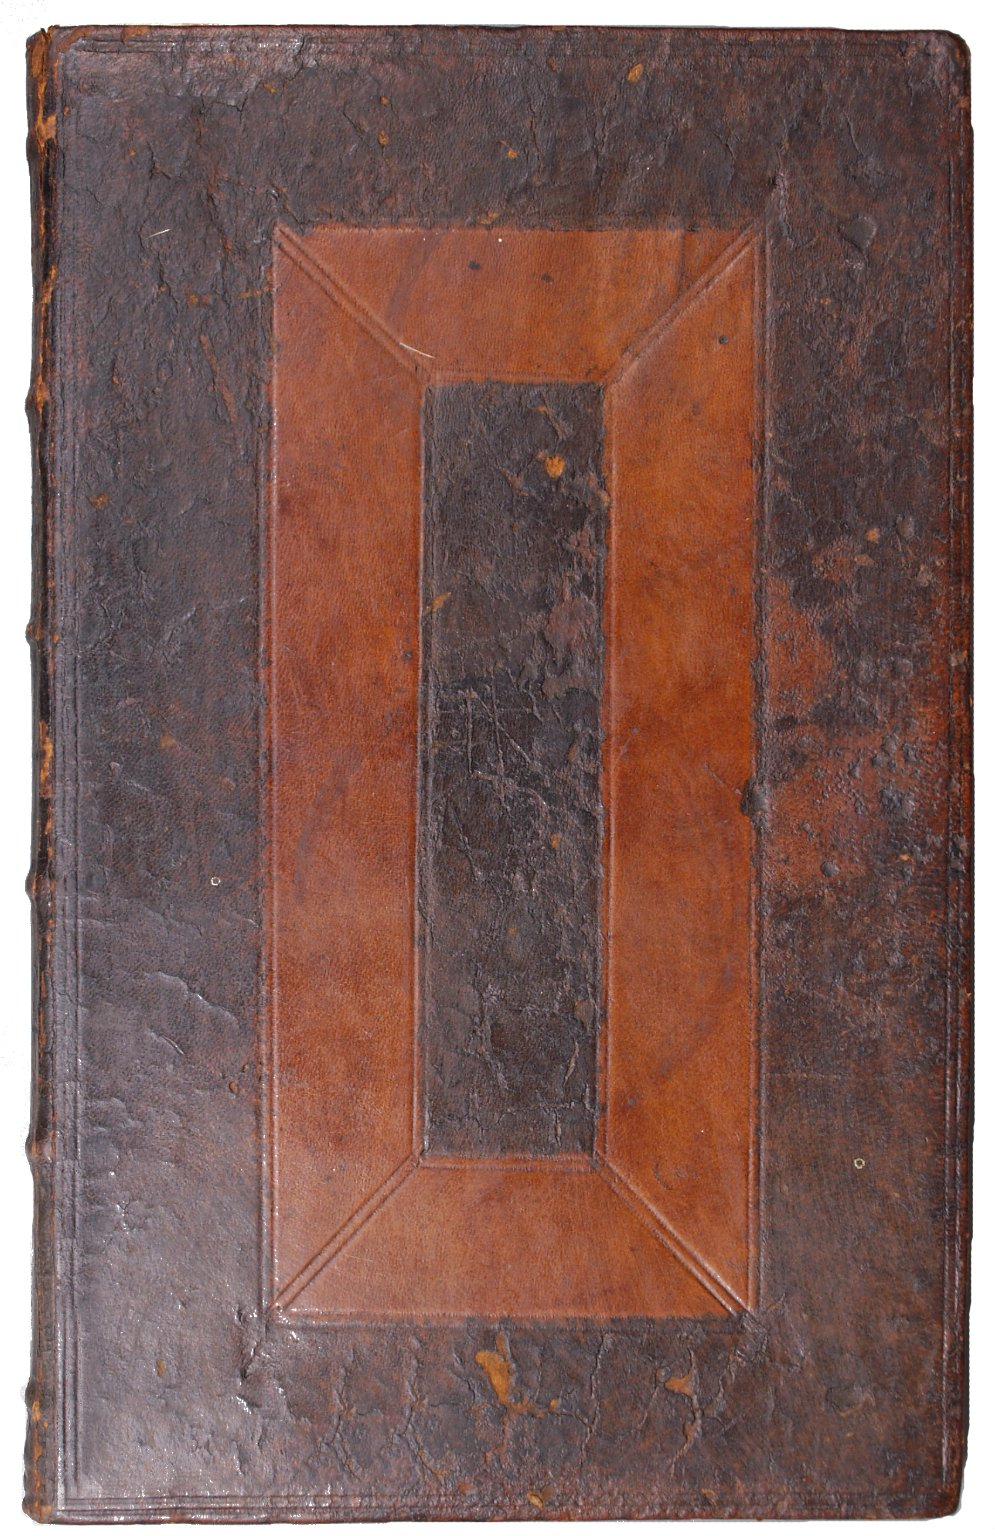 Front cover, STC 4547.